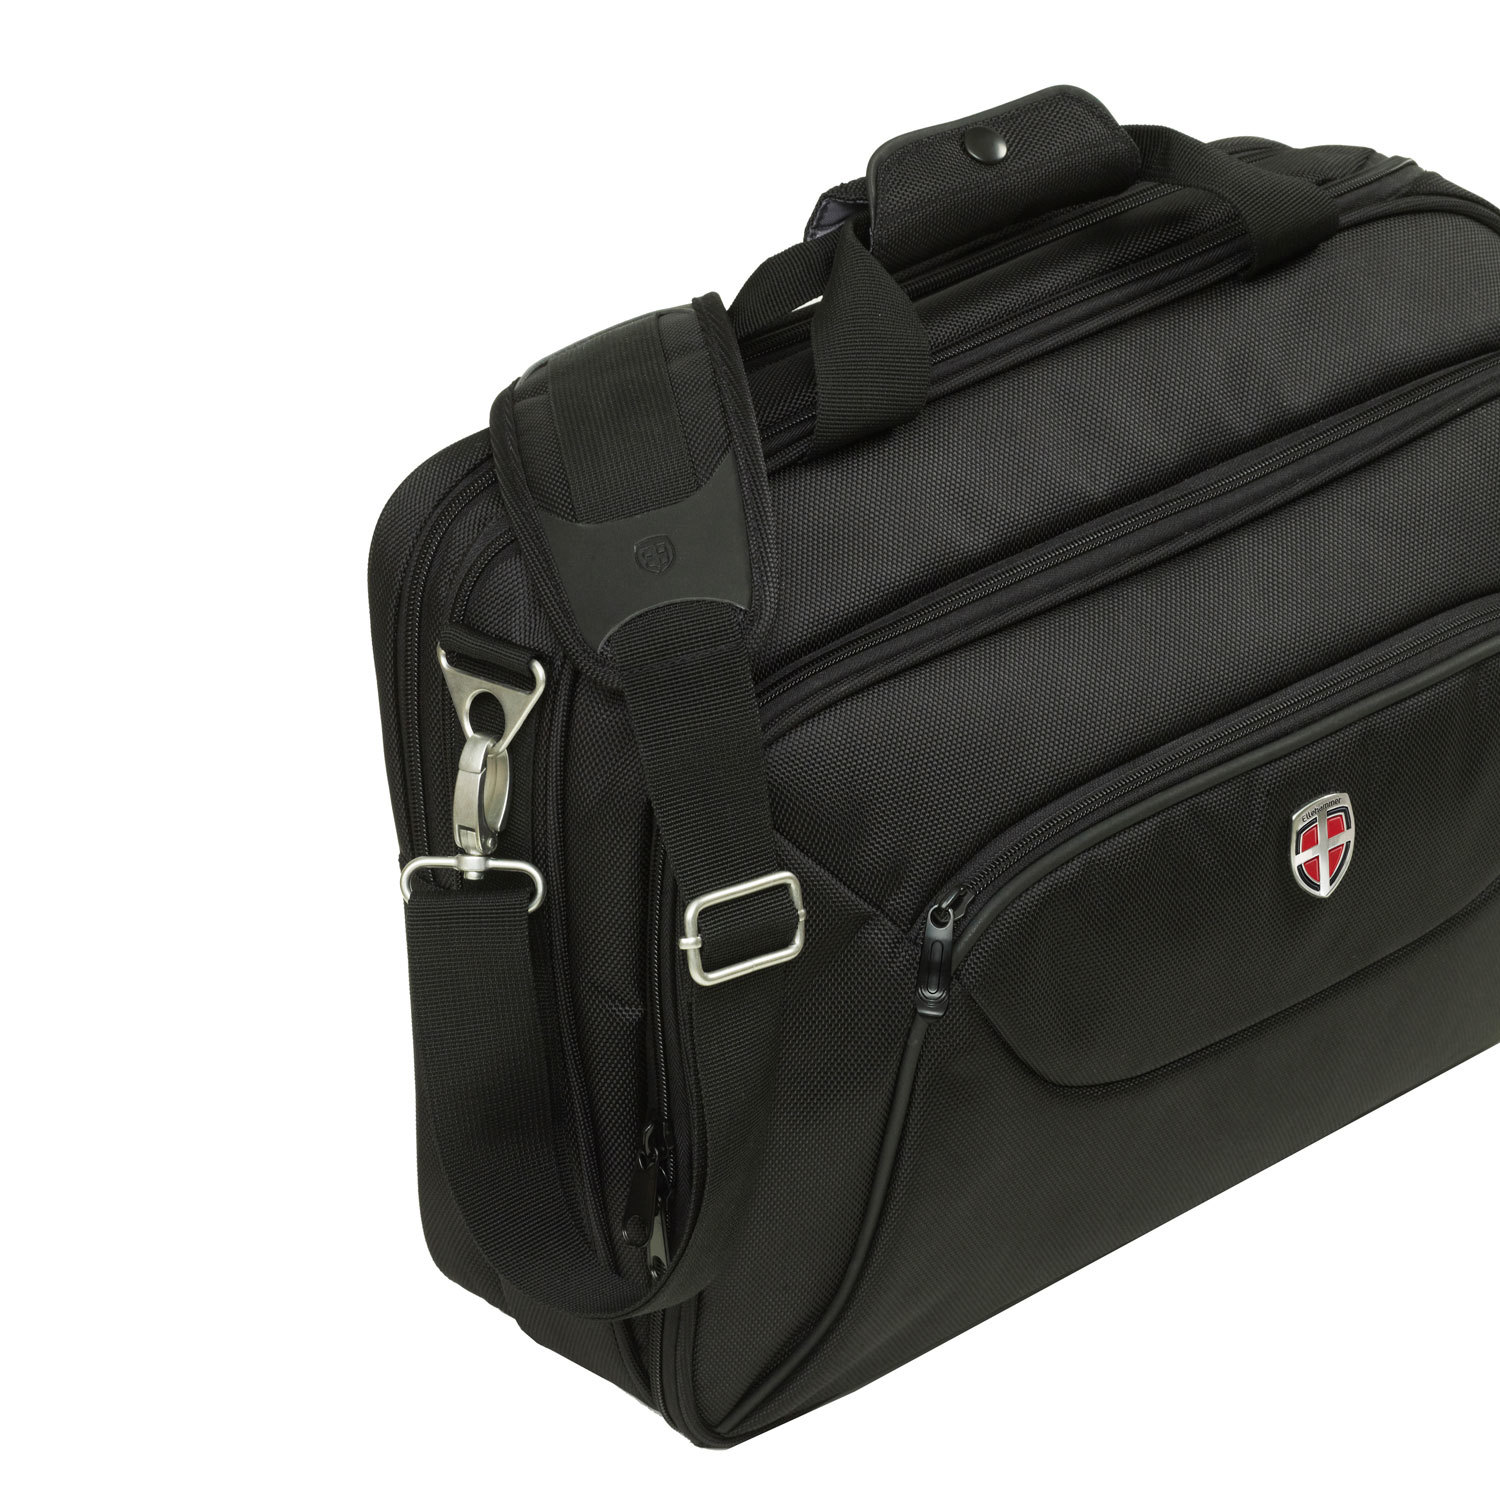 CPH-laptop-bag-deluxe-detail-black2.jpg